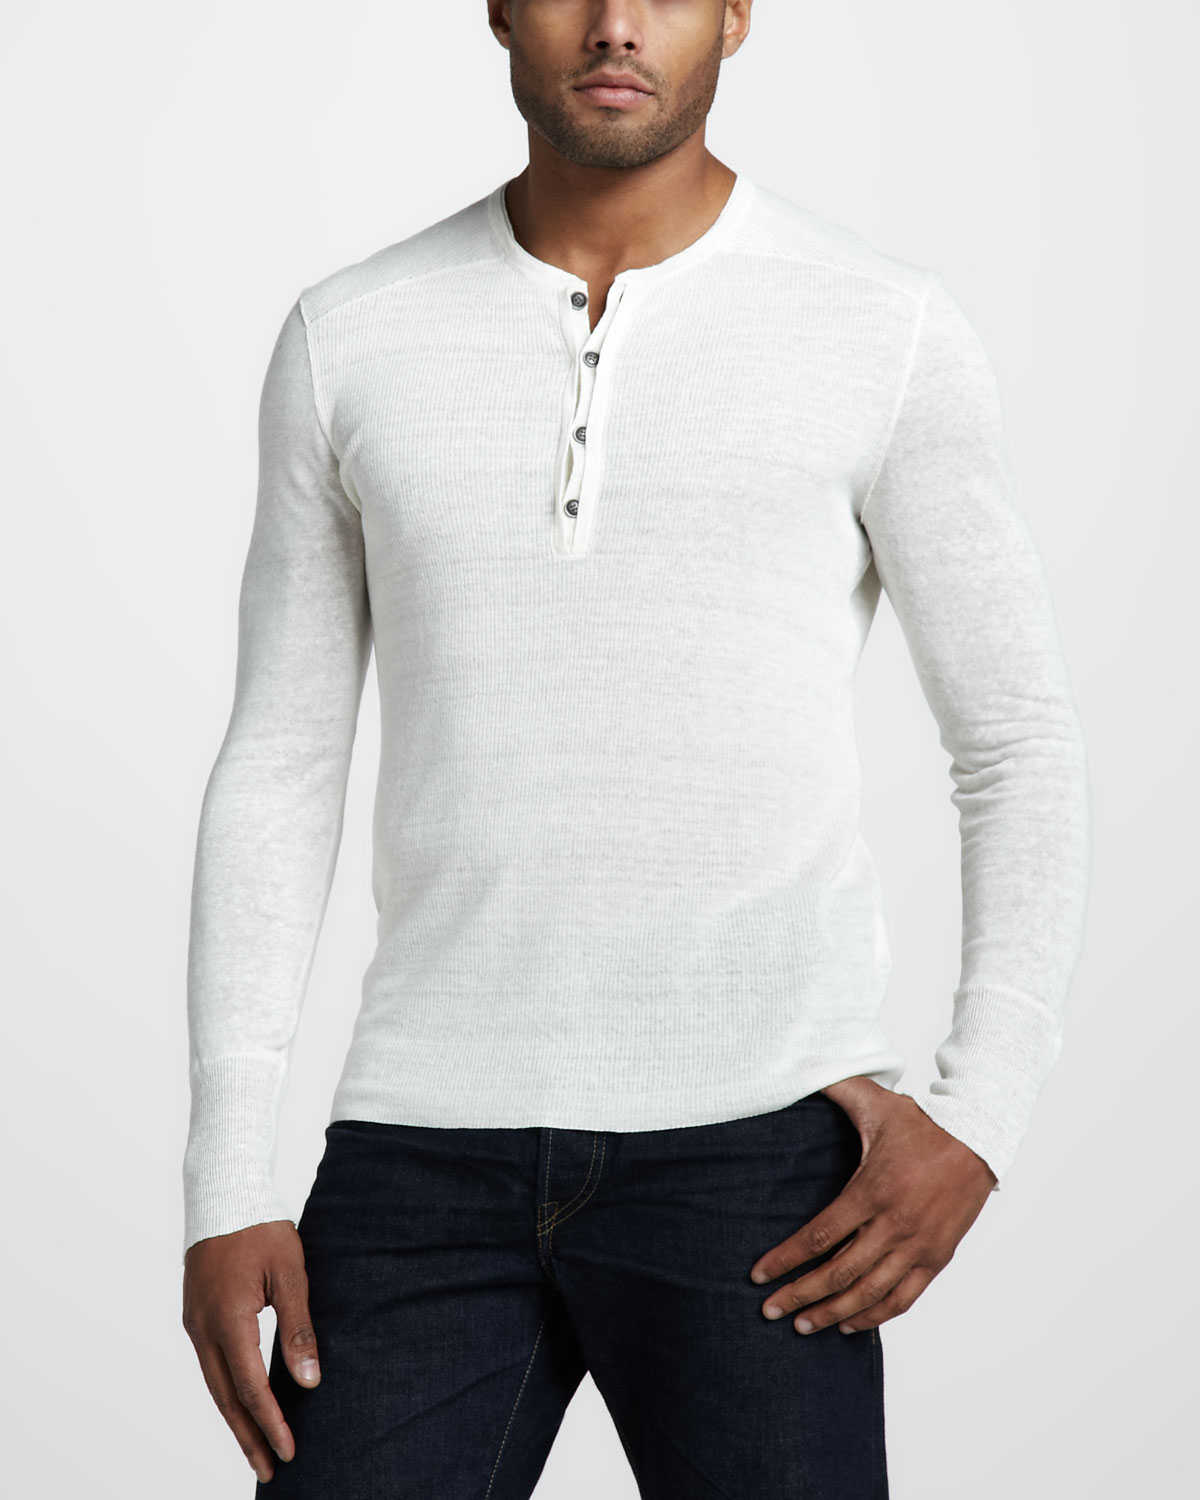 Home Men Shirts Sweaters & Turtlenecks Men's Burly Retirement Henley Sweater If you are not % satisfied with any item you purchase from Duluth Trading, return it to us at any time for a refund of its purchase price.